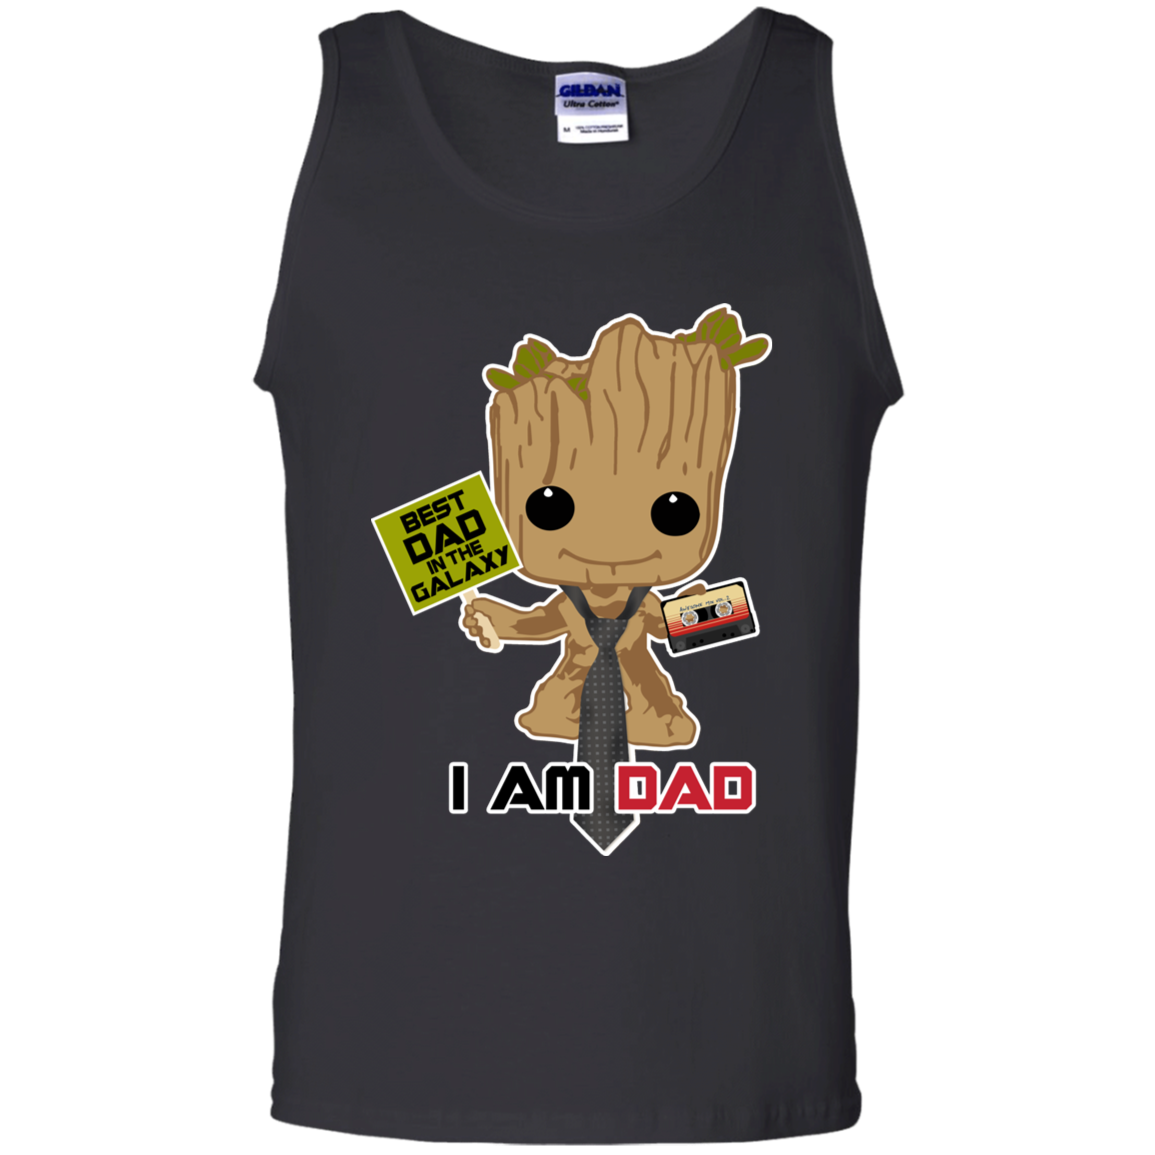 I Am Dad - Tank Top